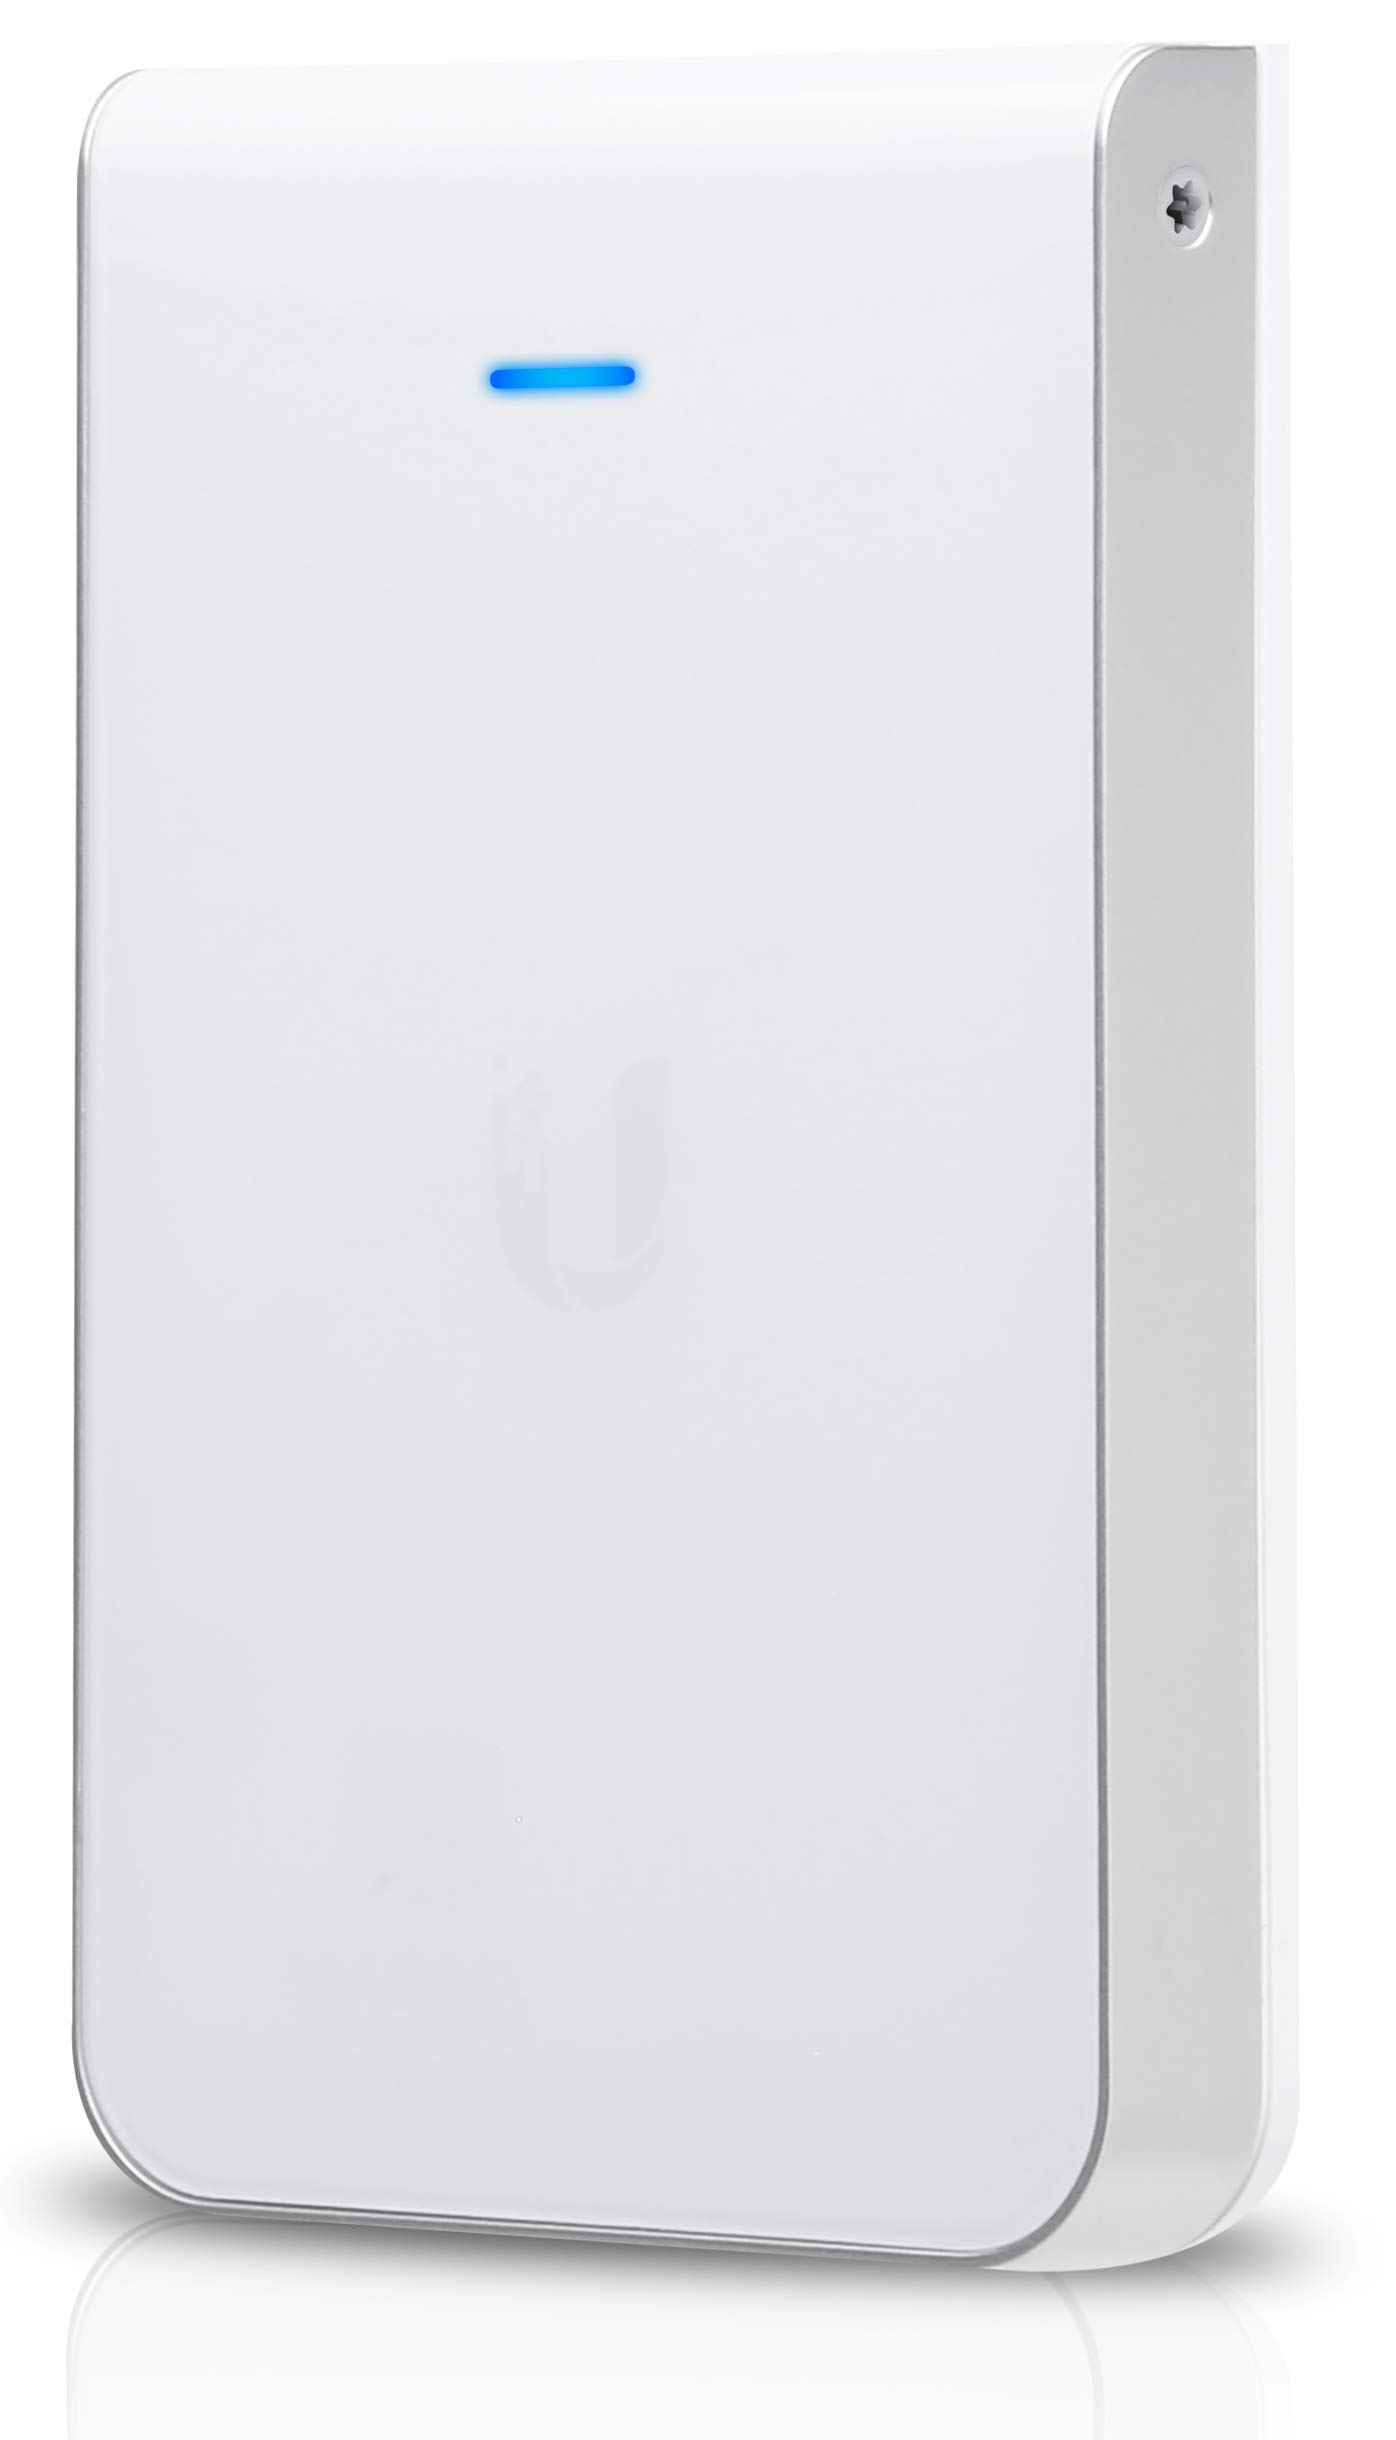 Ubiquiti Networks UniFi in-Wall Wi-Fi Access Point 802.11AC Wave 2 (UAP-IW-HD-US) by Ubiquiti Networks